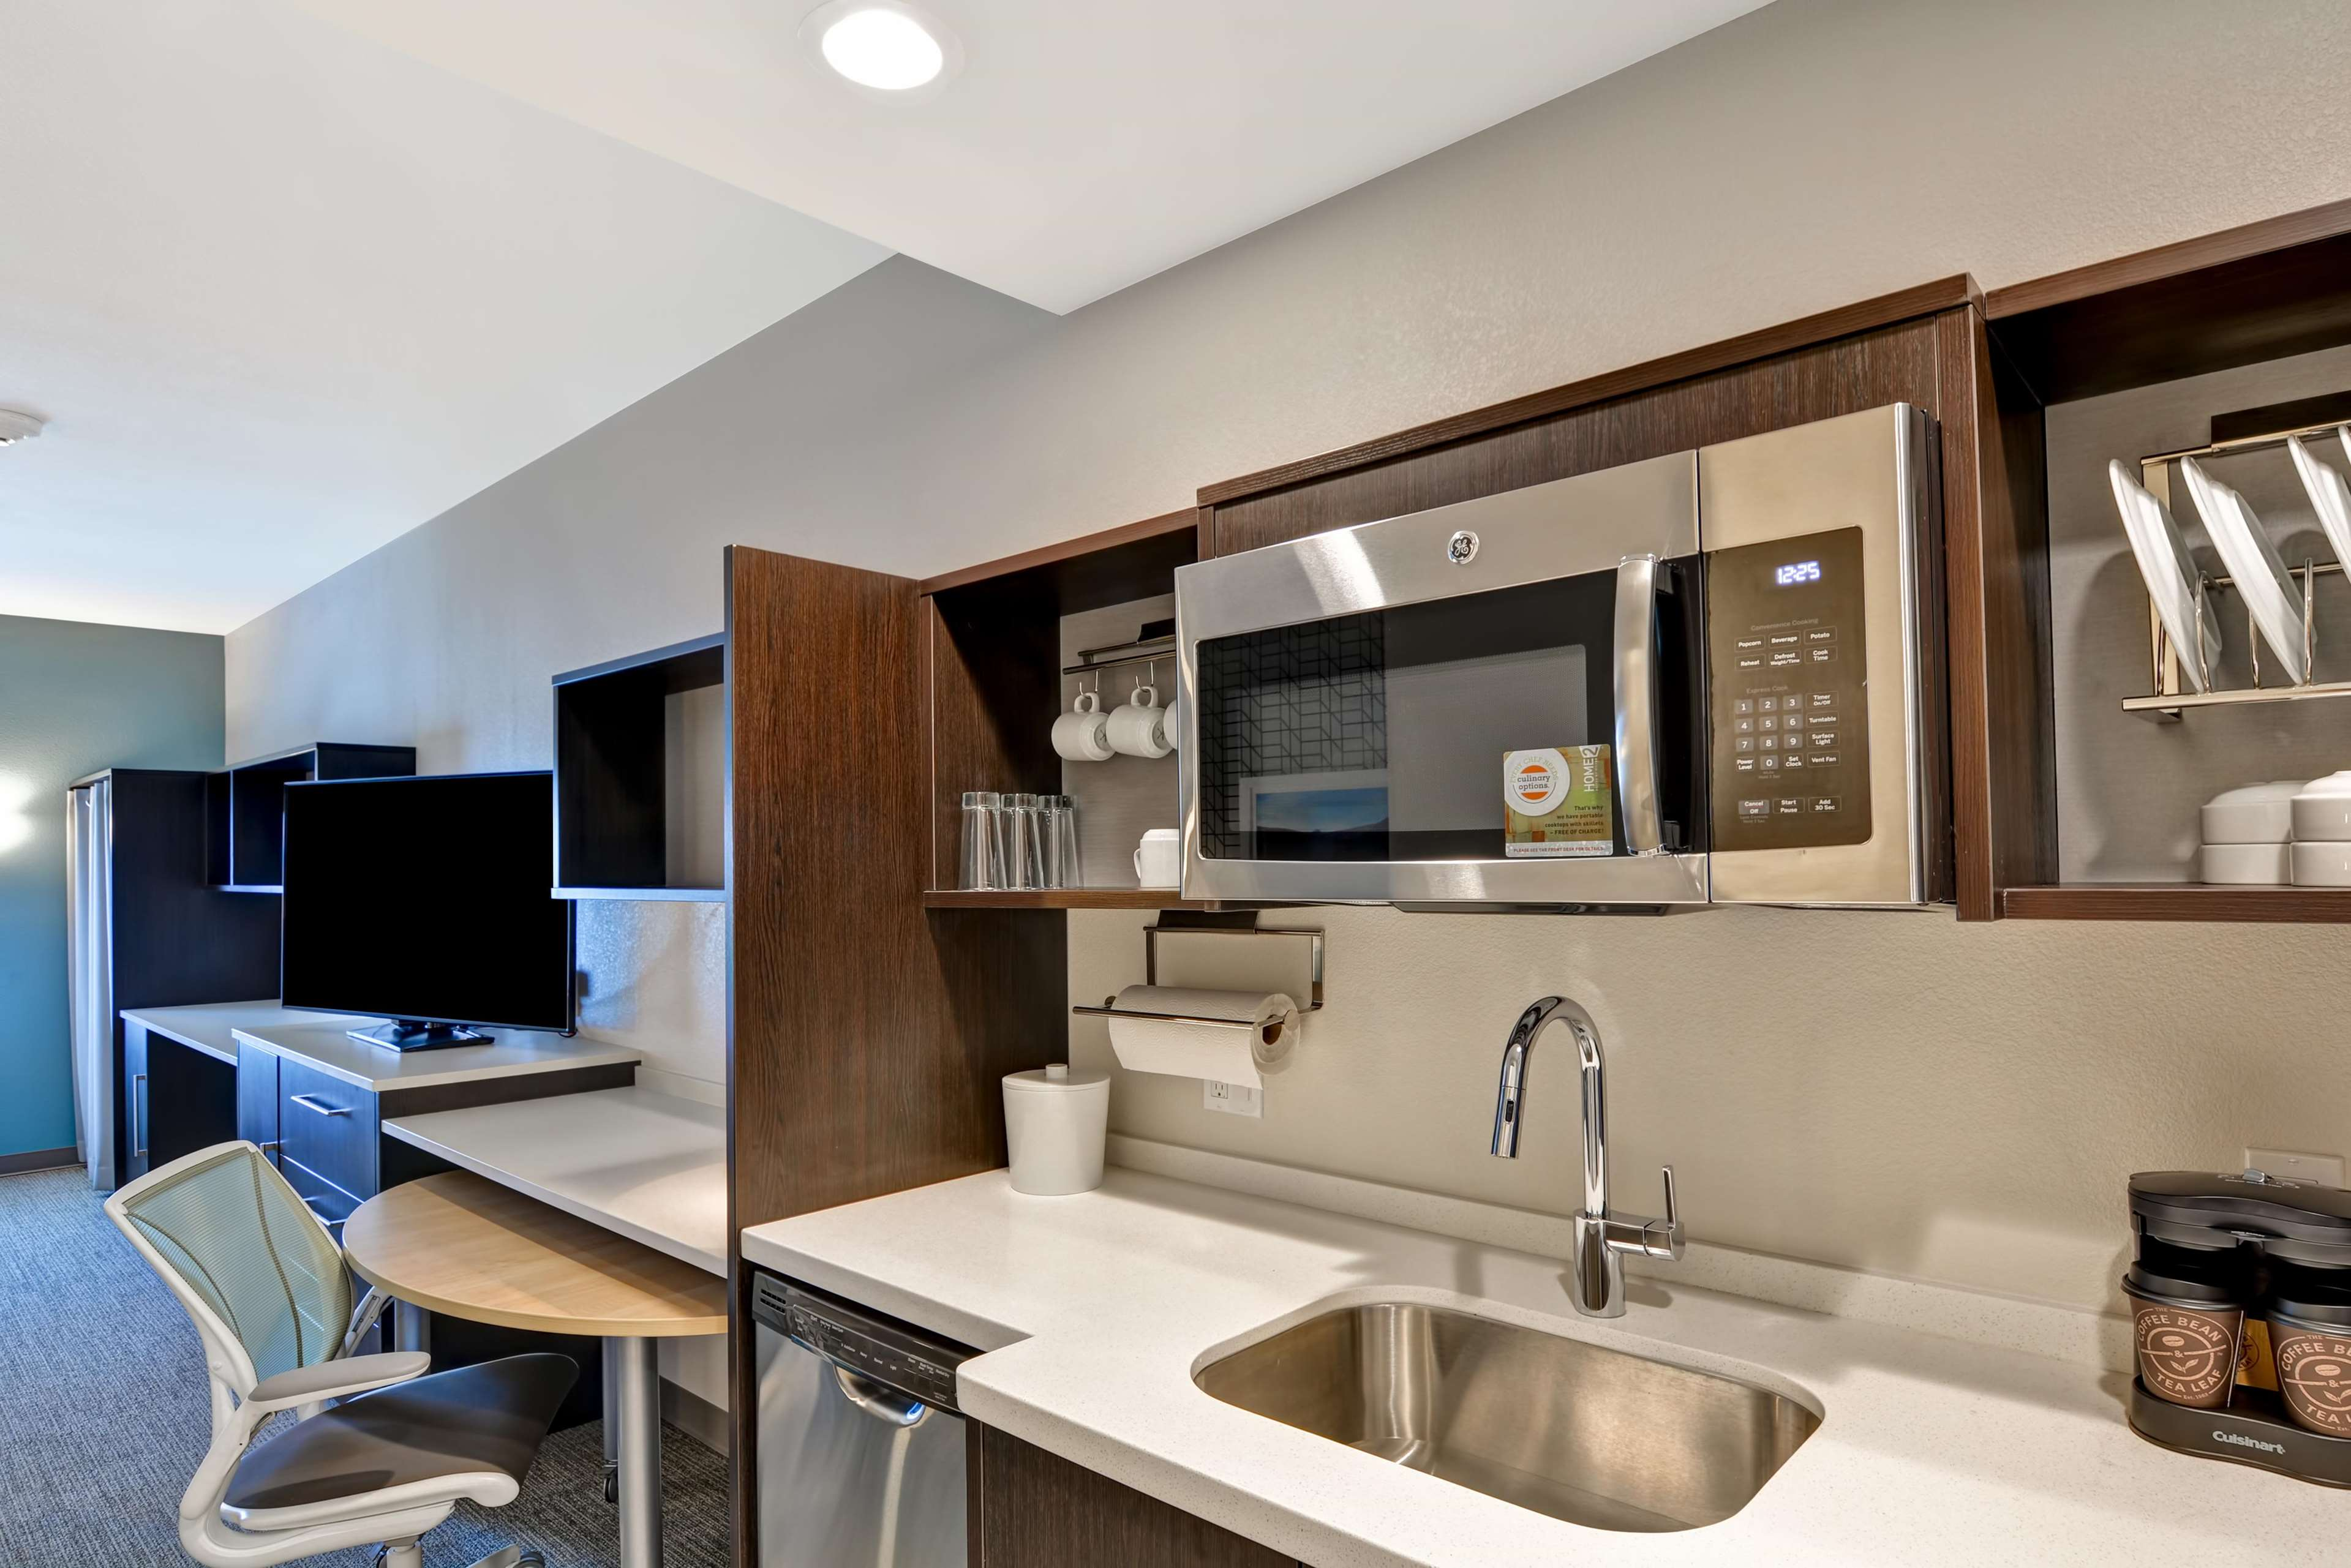 Home2 Suites by Hilton Palmdale image 21